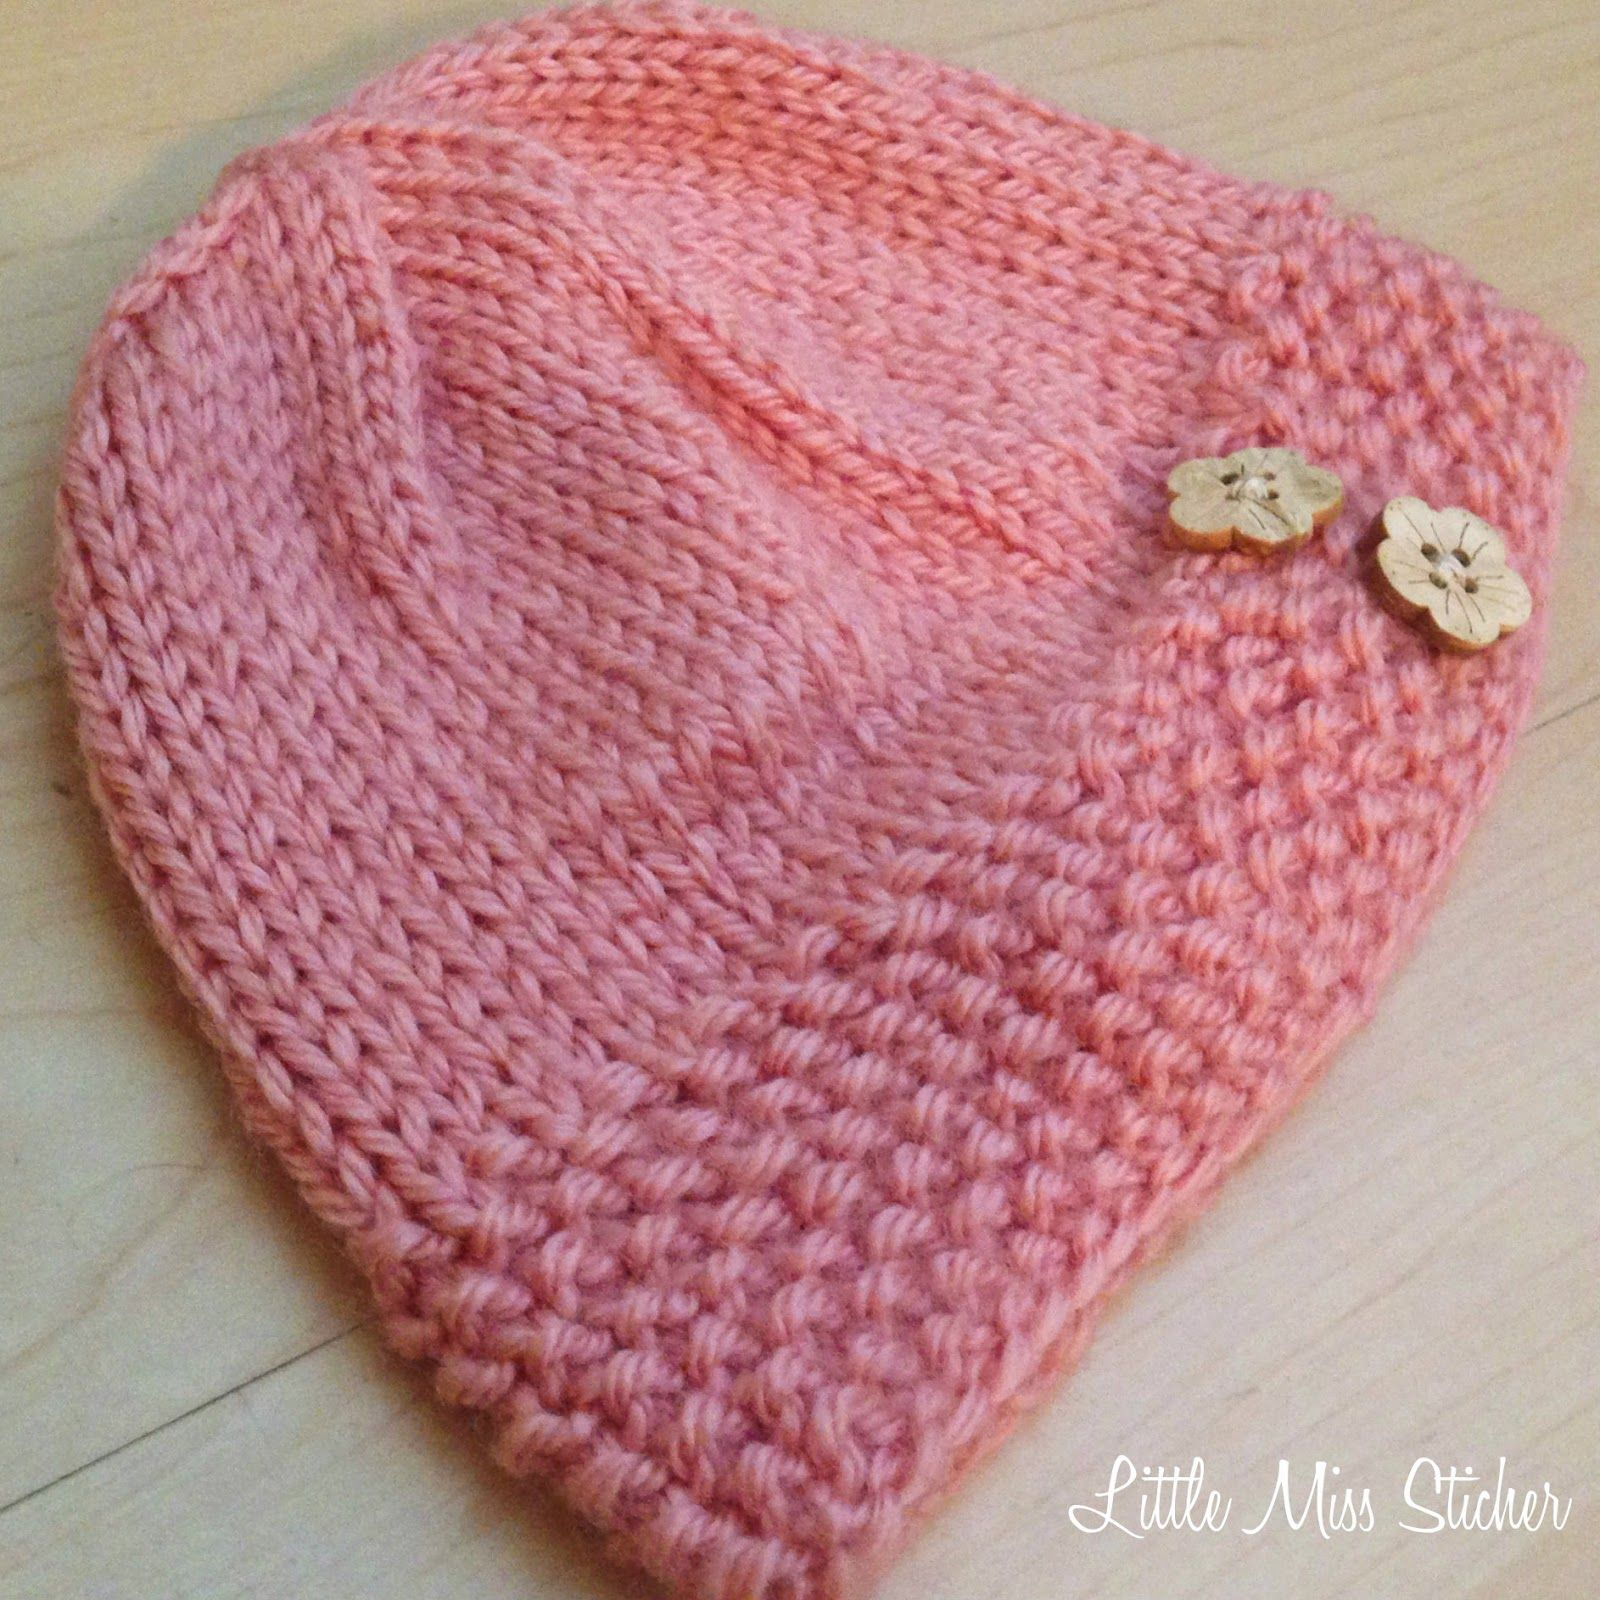 Little miss stitcher bitty beanie free knit pattern knitting little miss stitcher bitty beanie free knit pattern bankloansurffo Image collections